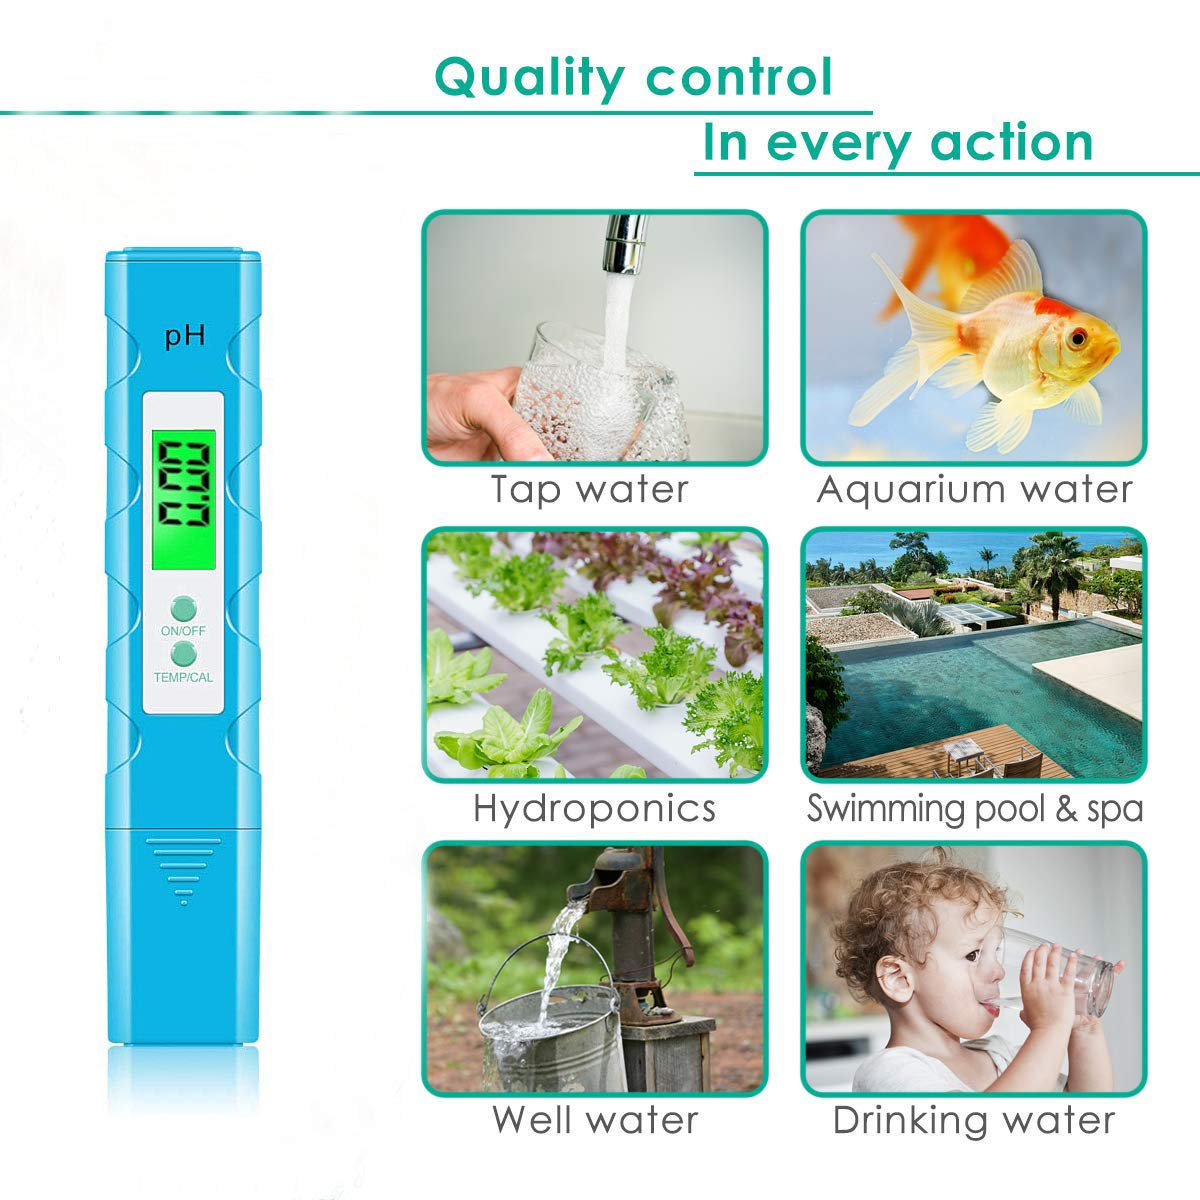 Blue Pool and Aquarium Water PH Tester Design with ATC VANTAKOOL Digital PH Meter PH Meter 0.01 PH High Accuracy Water Quality Tester with 0-14 PH Measurement Range for Household Drinking